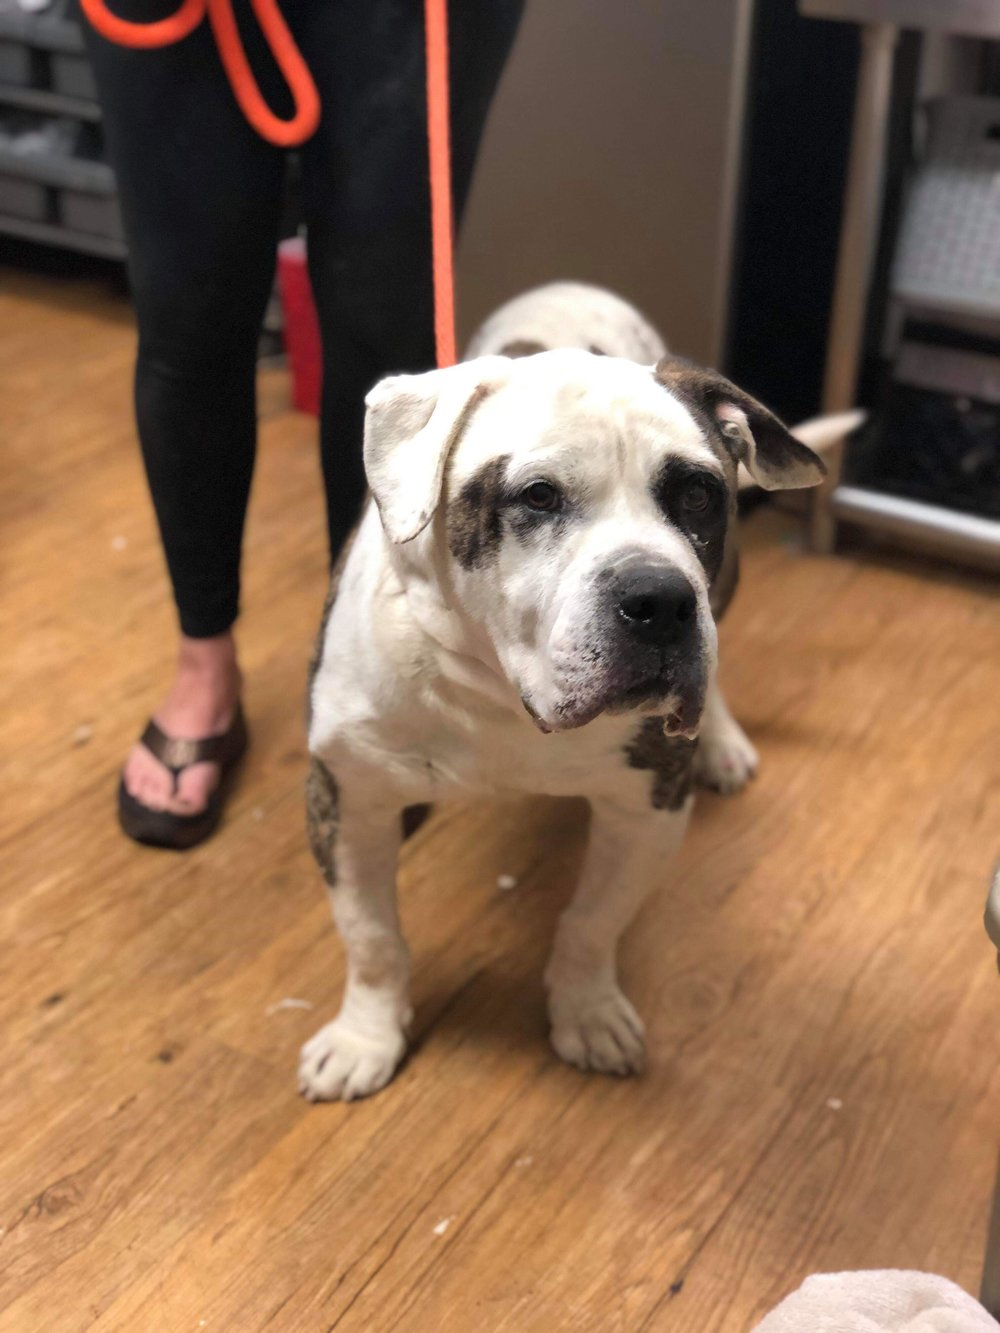 Rumble is an easy-going Bulldog boy currently being fostered in Louisiana.